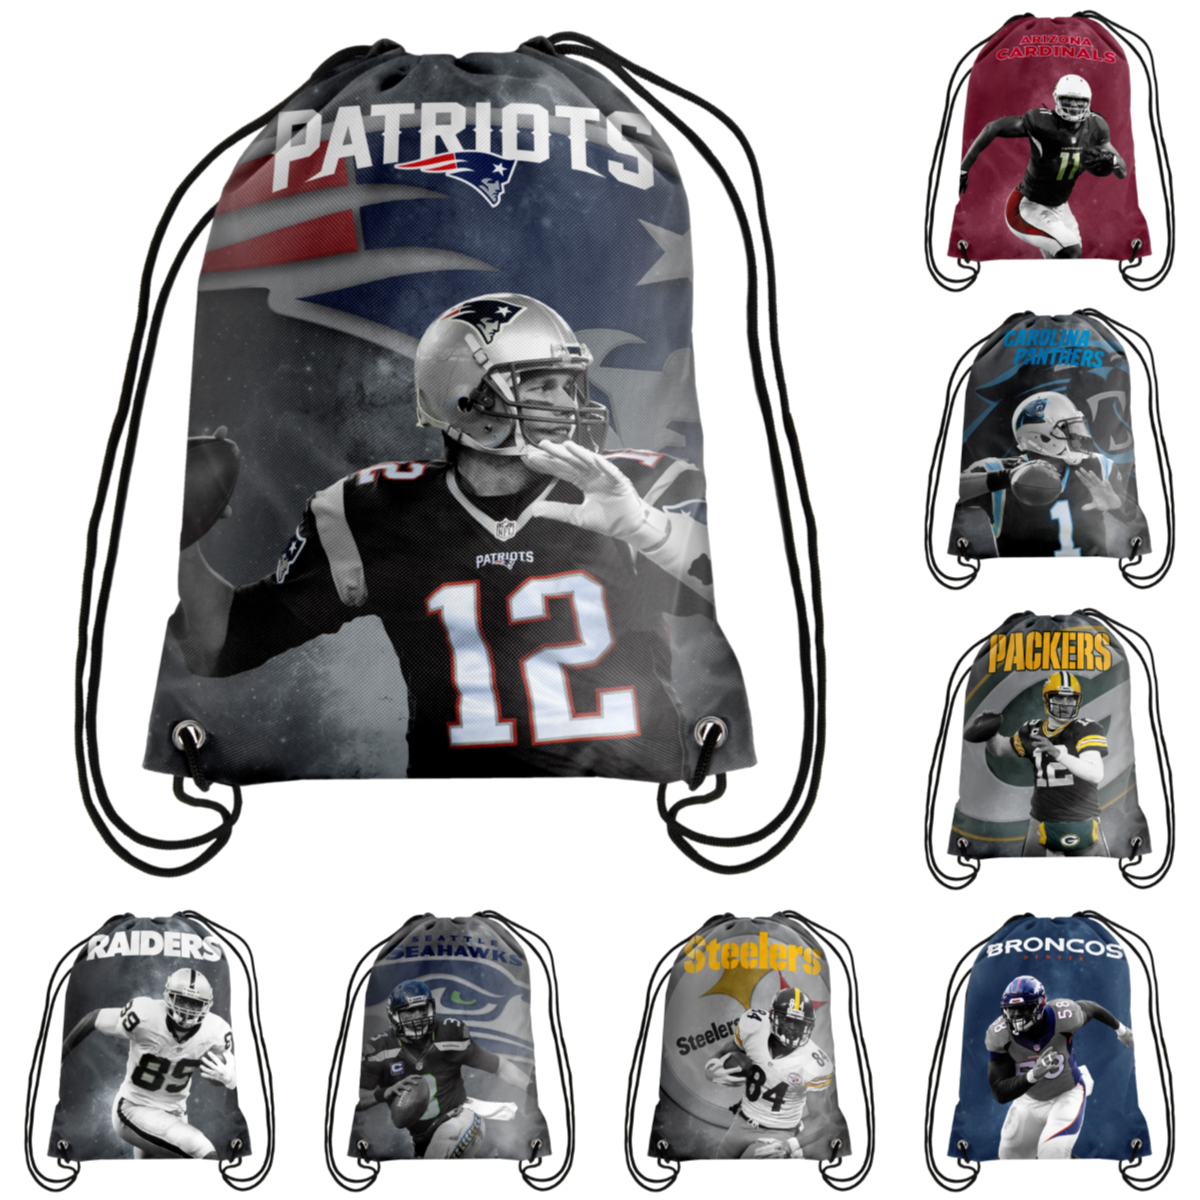 NFL Football Player Printed Drawstring Backpack - Pick Player